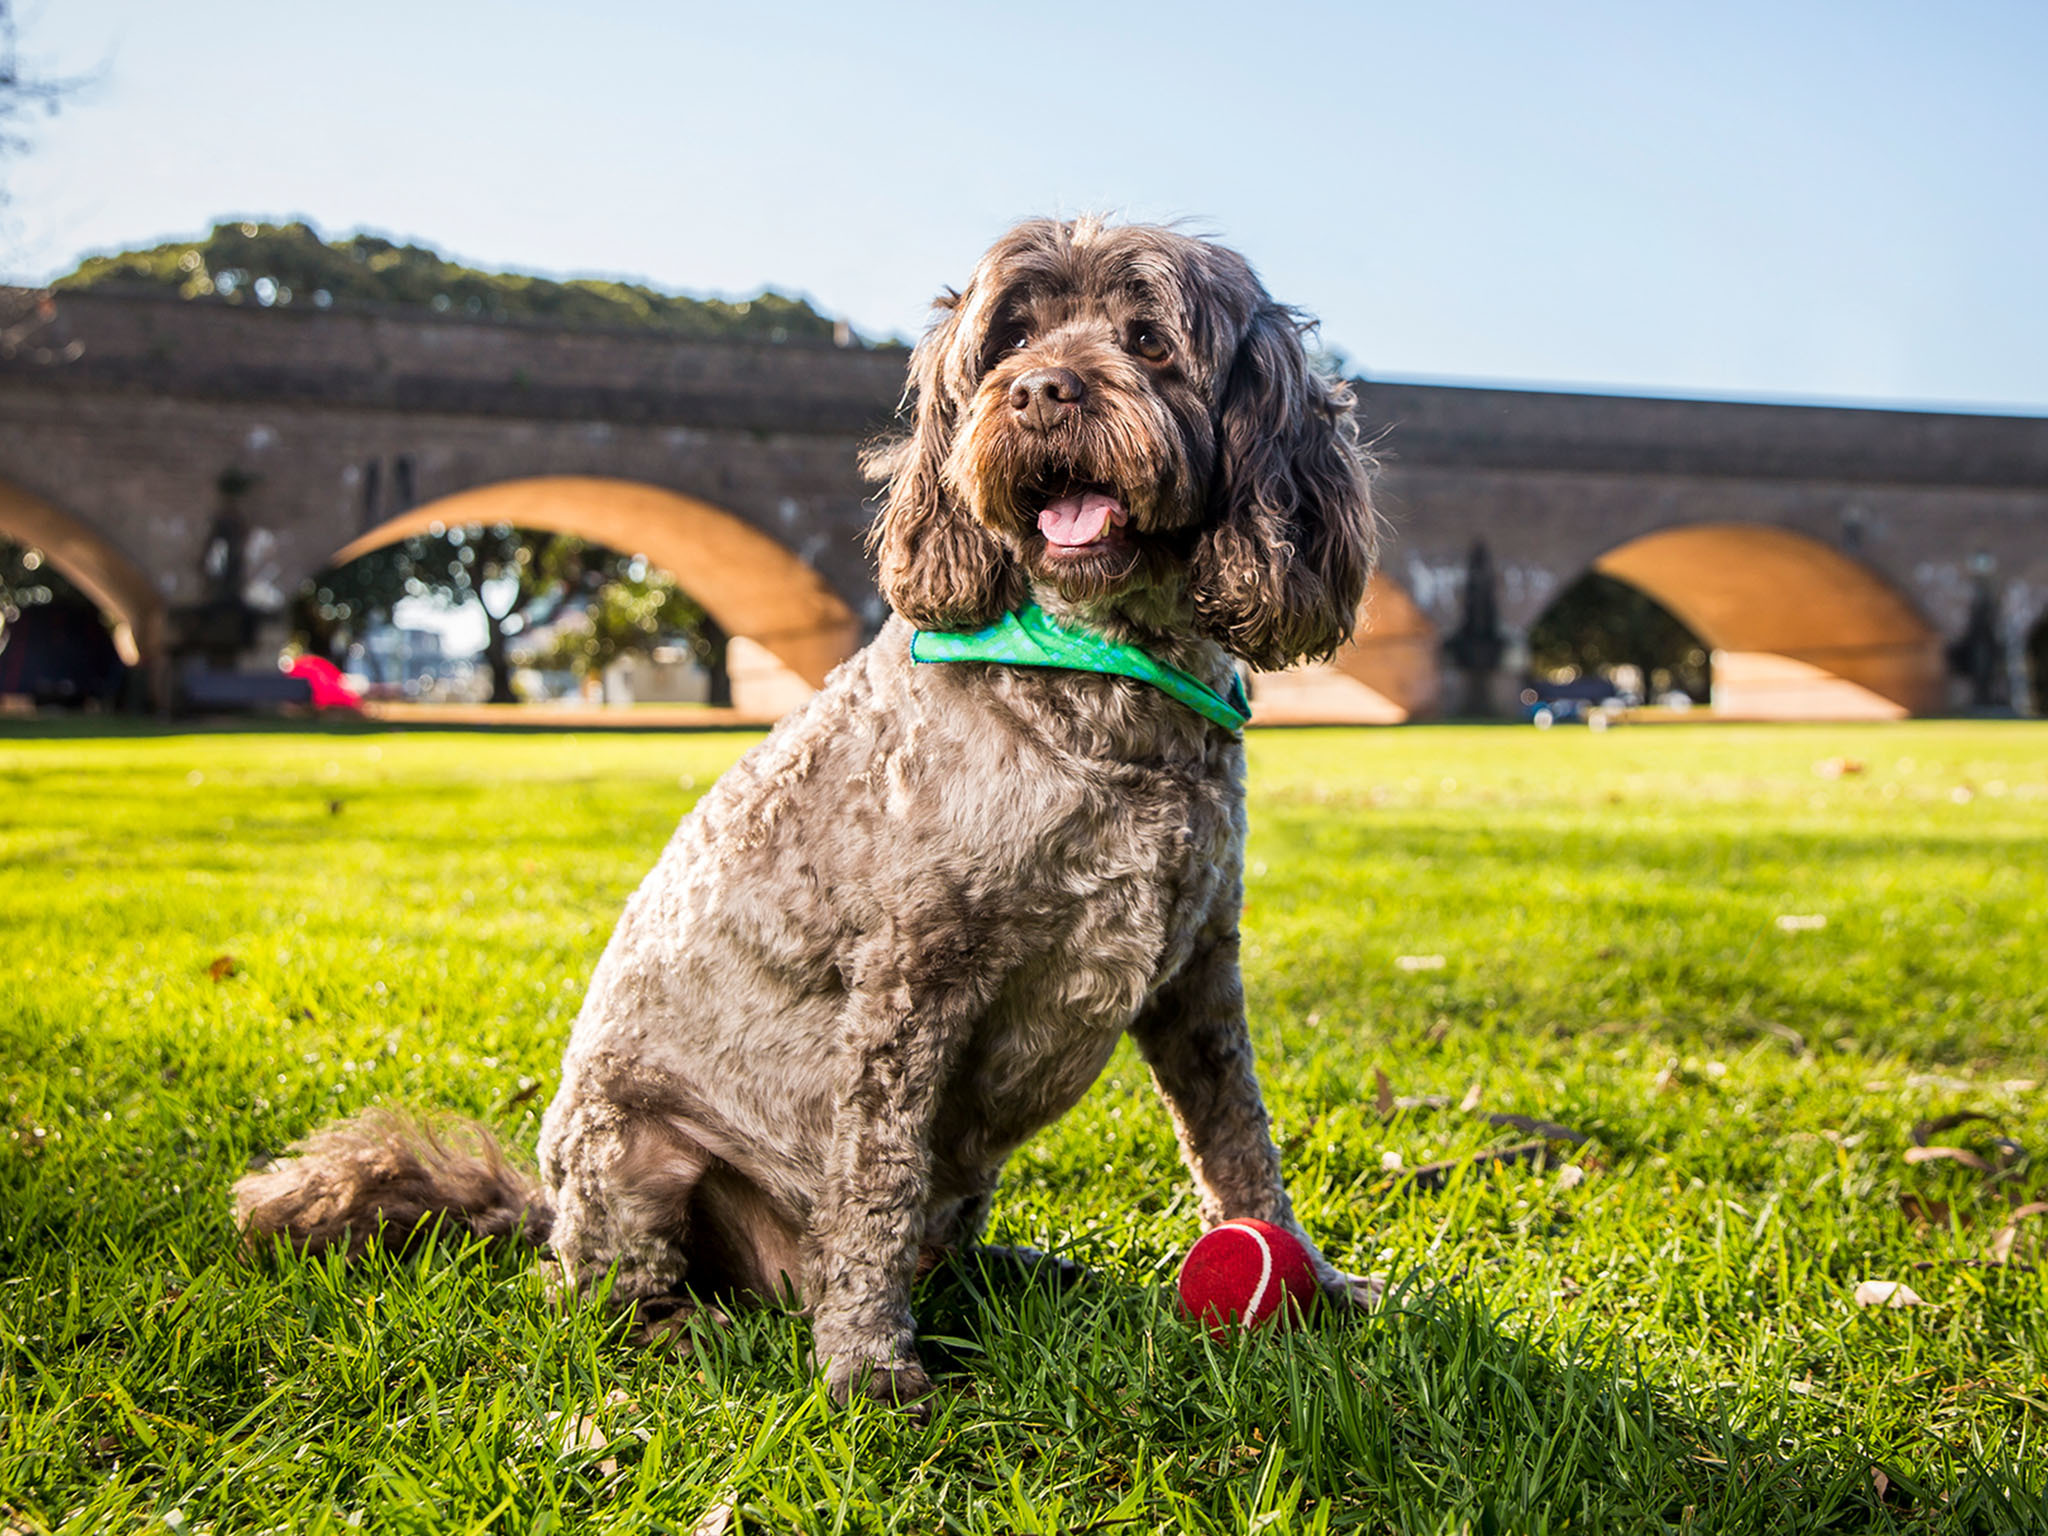 Pat all the pups at the RSPCA's Million Paws Walk this Sunday